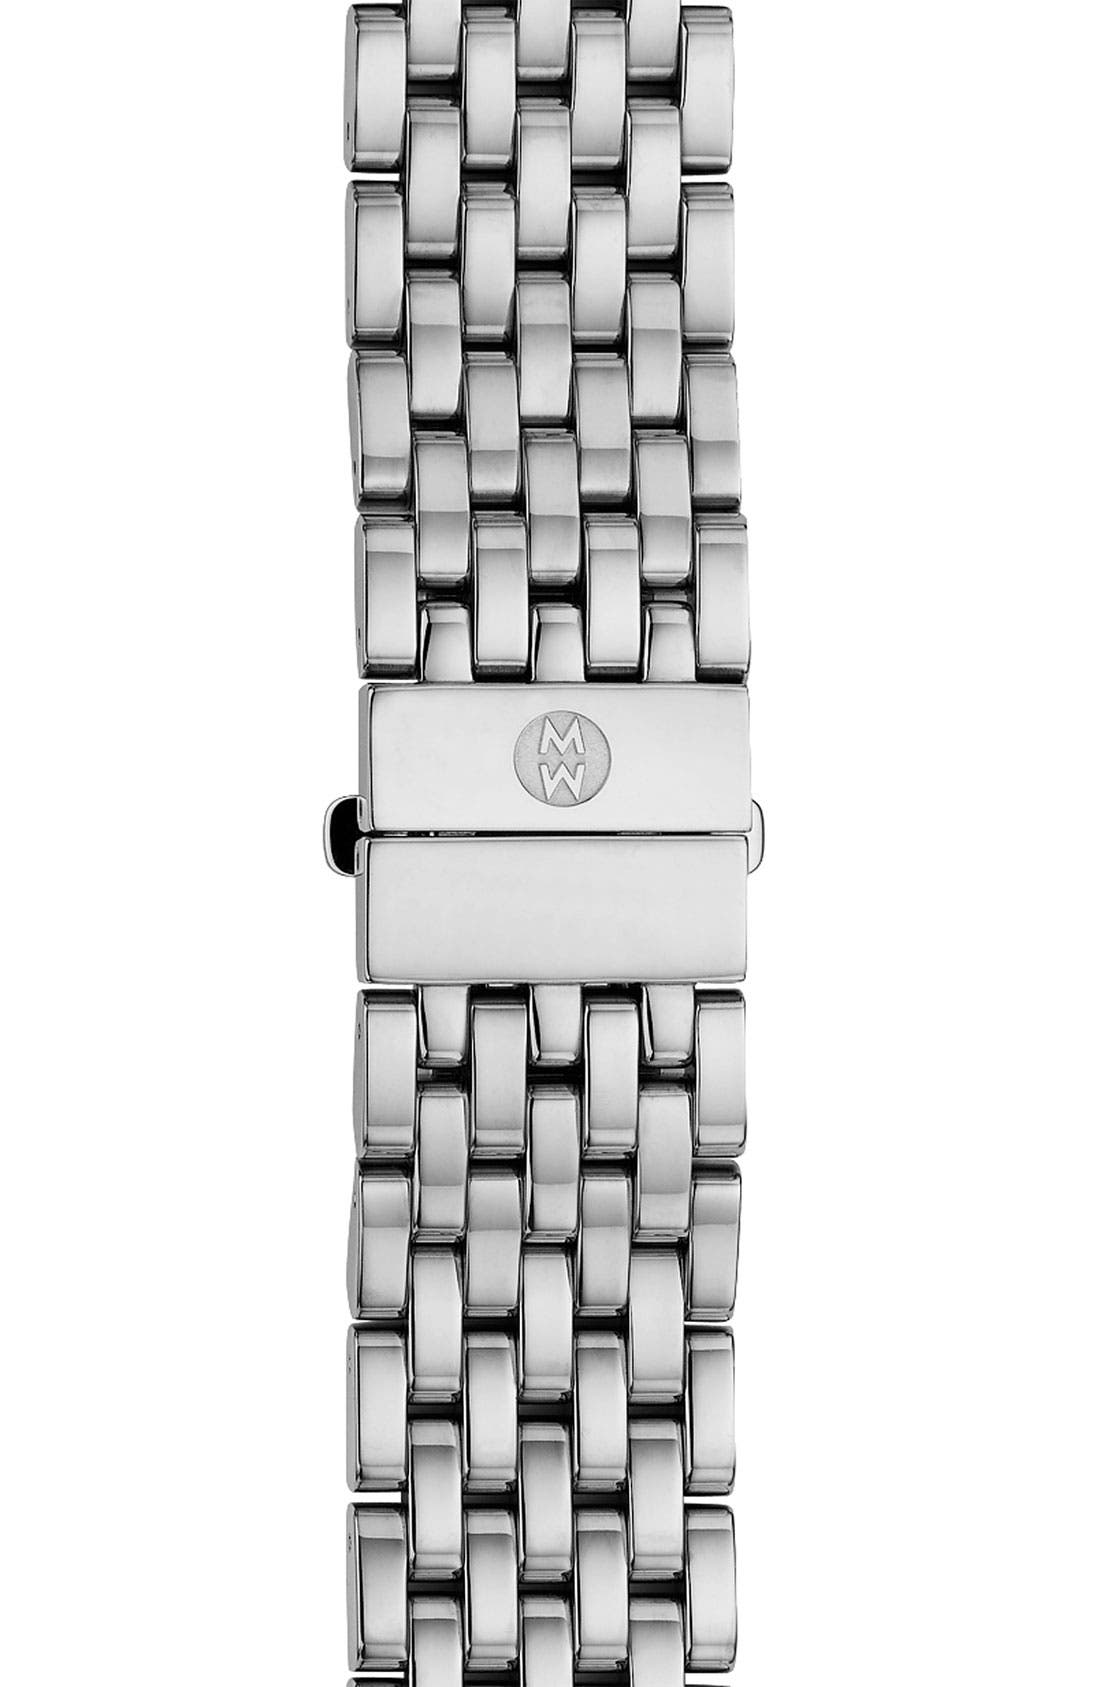 Alternate Image 1 Selected - MICHELE 'Serein' 18mm Watch Bracelet Band